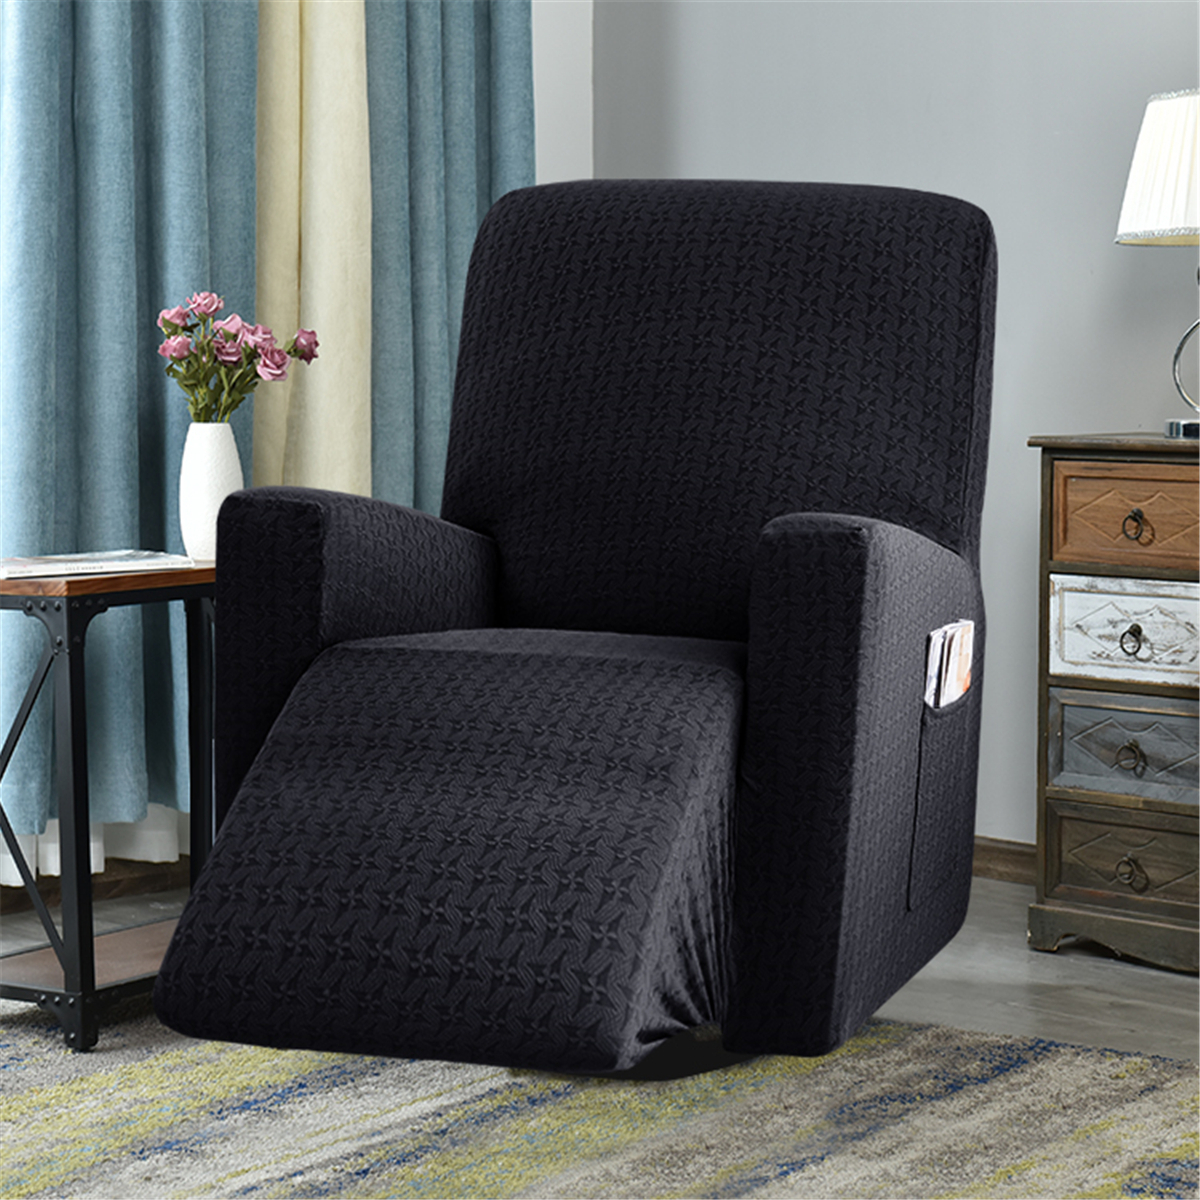 Large Recliner Chair Covers Sofa Couch Covers Stretch For Big Sofa Chairs (View 11 of 15)